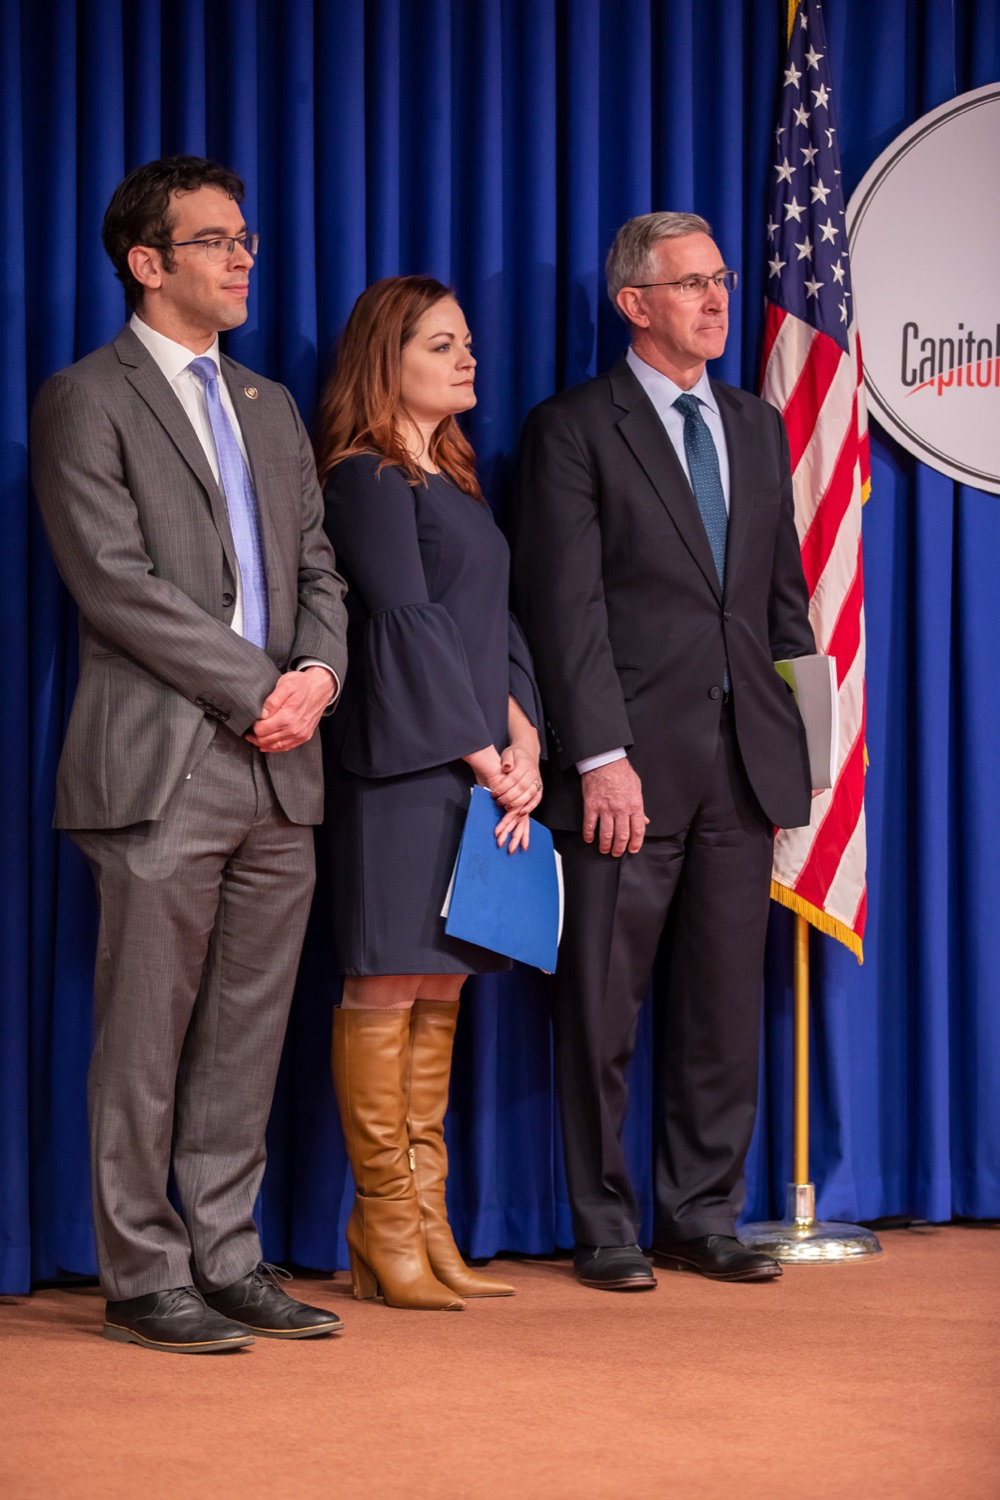 """<a href=""""https://filesource.wostreaming.net/commonwealthofpa/photo/17711_DHS_SuicidePrevention_AG_15.jpg"""" target=""""_blank"""">⇣Download Photo<br></a>Harrisburg, PA.  (left to right) PA Rep. Michael Schlossberg, Caitlin Palmer and Secretary of Agriculture Russell Redding were in attendance at todays event discussing the initial report of Pennsylvanias Suicide Prevention Task Force based on the statewide listening sessions held throughout fall 2019. The work of the Suicide Prevention Task Force is a complement to the goals and strategies surrounding the governors Reach Out PA: Your Mental Health Matters initiative announced earlier this month and his Executive Order to protect vulnerable populations signed last year.  January 14, 2020."""